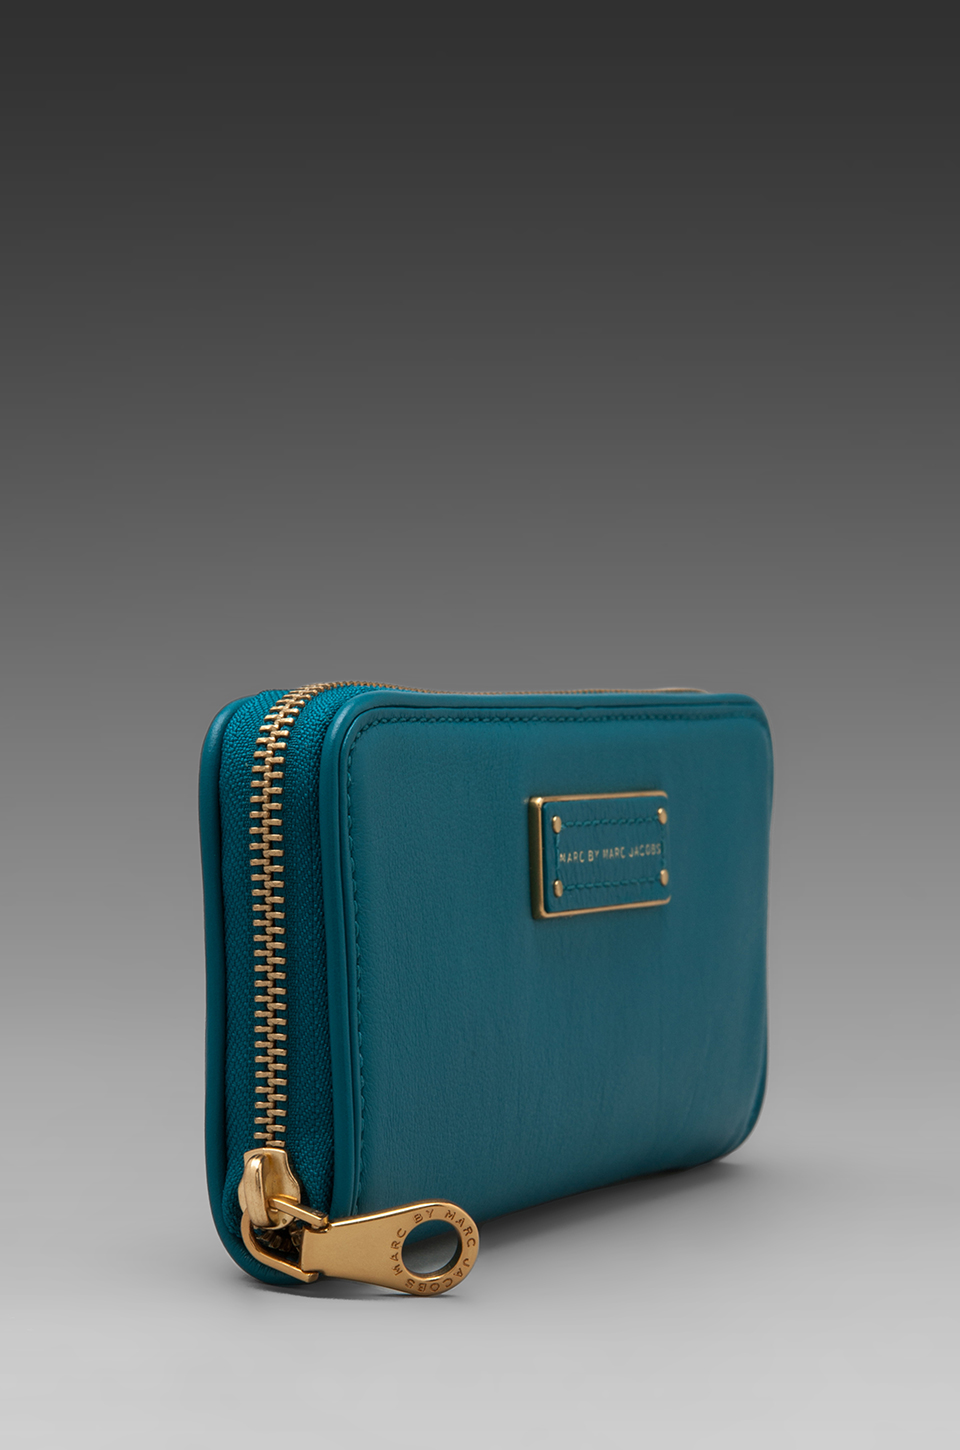 Marc by Marc Jacobs Too Hot to Handle Slim Zip Around Wallet in Deep Teal